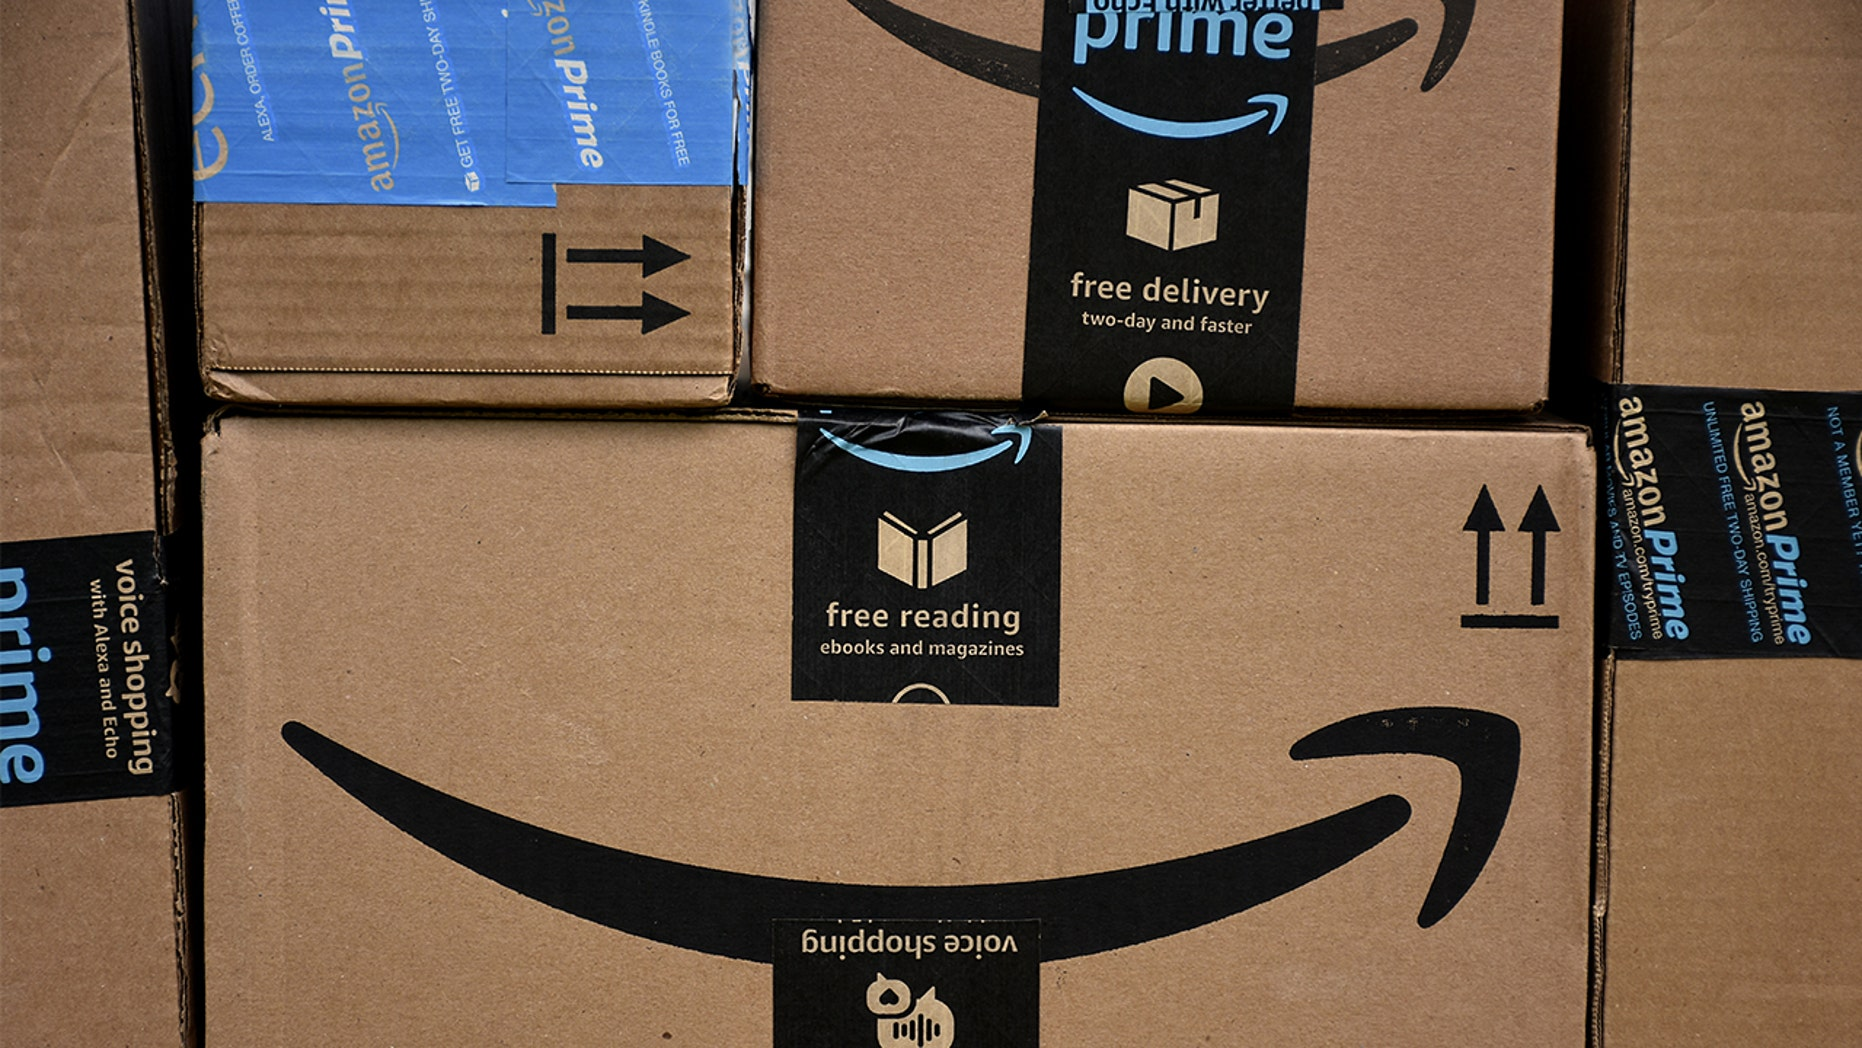 Amazon says error exposed customer names and emails